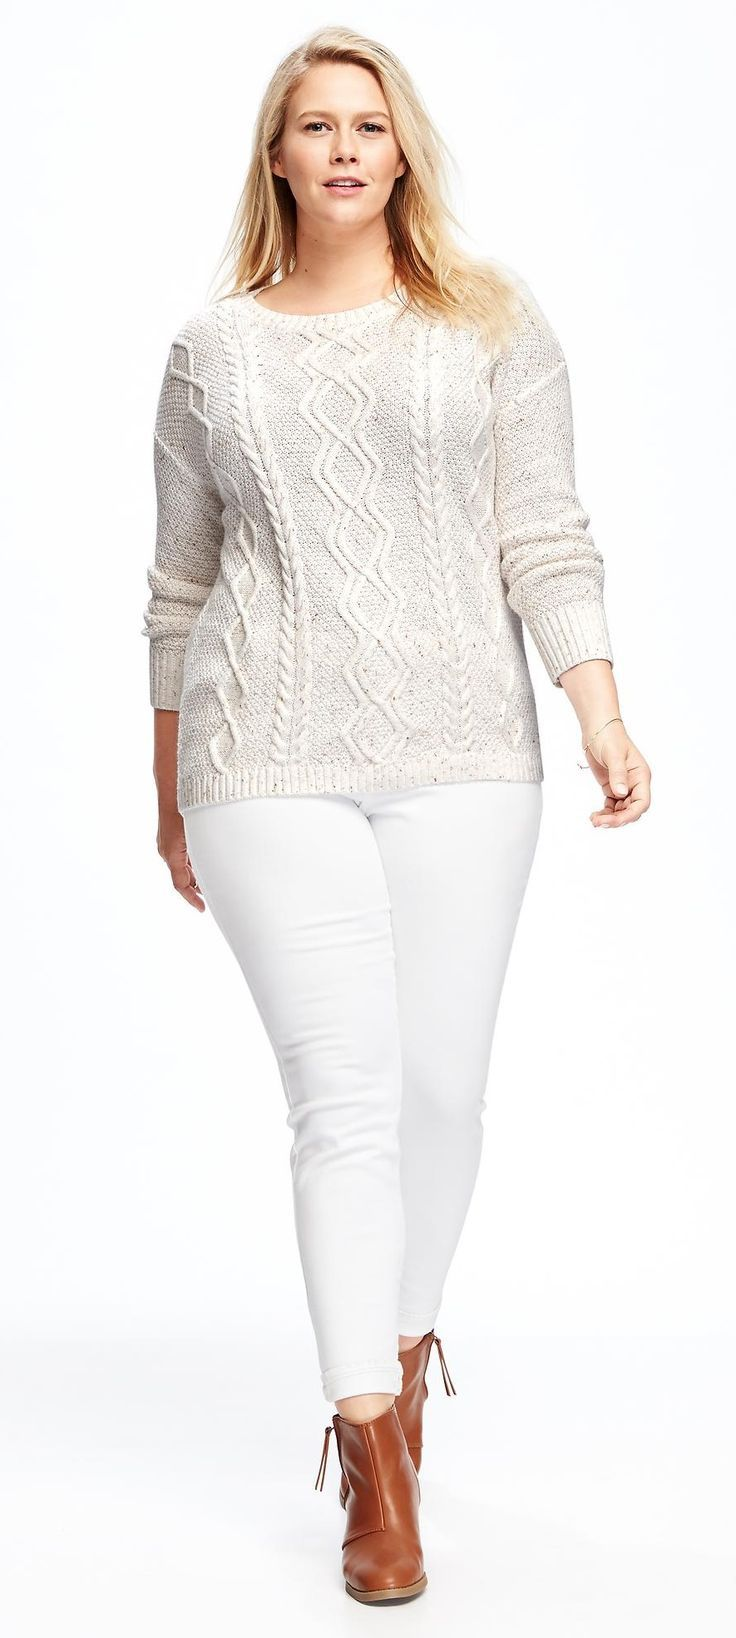 Plus Size Cable Knit Sweater Plus Size Fashion Pinterest Cable